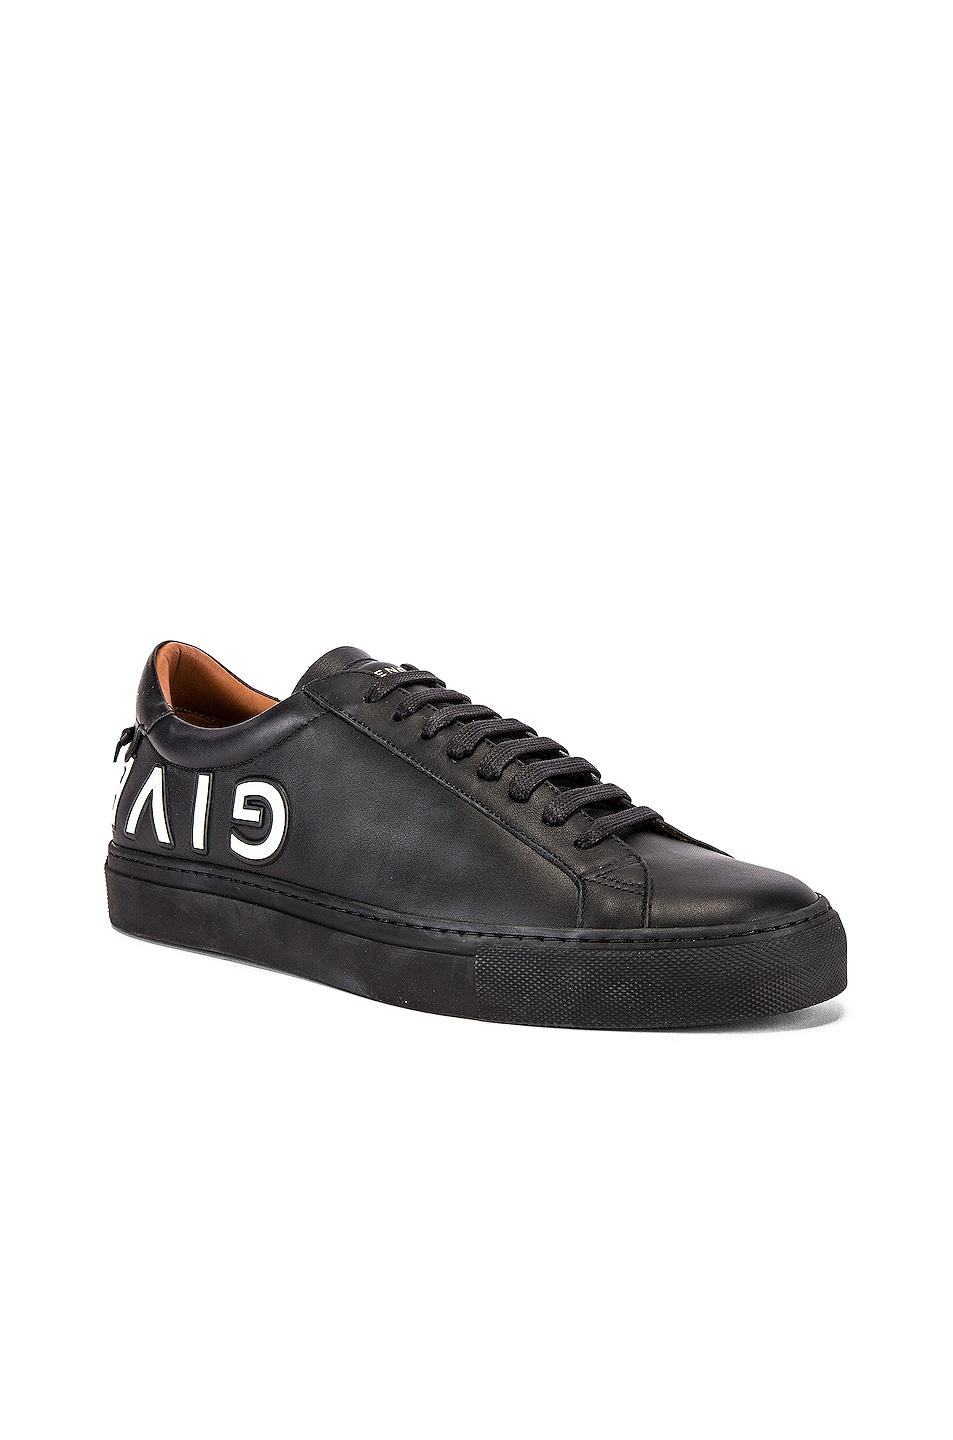 Image 1 of Givenchy Urban Street Sneaker in Black & White